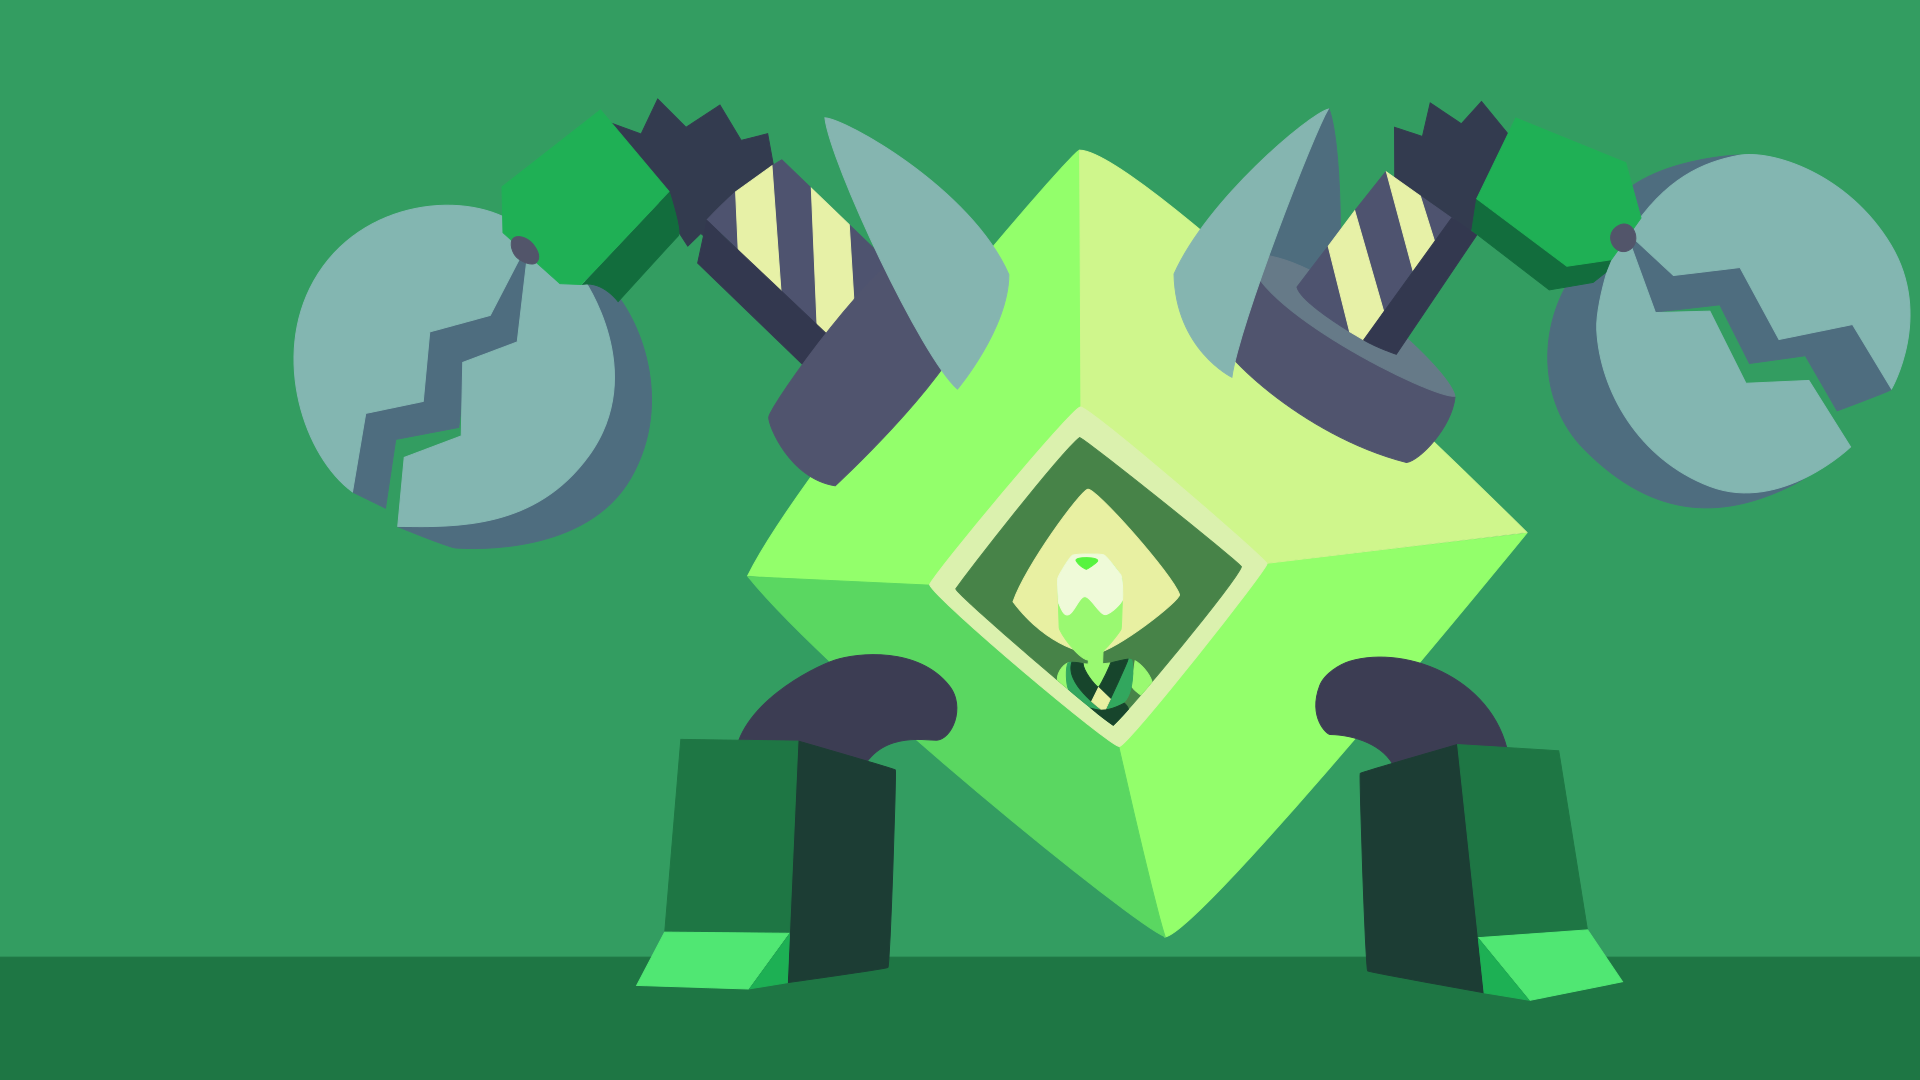 Peridots robot vector wallpaper by CaptainBeans on DeviantArt